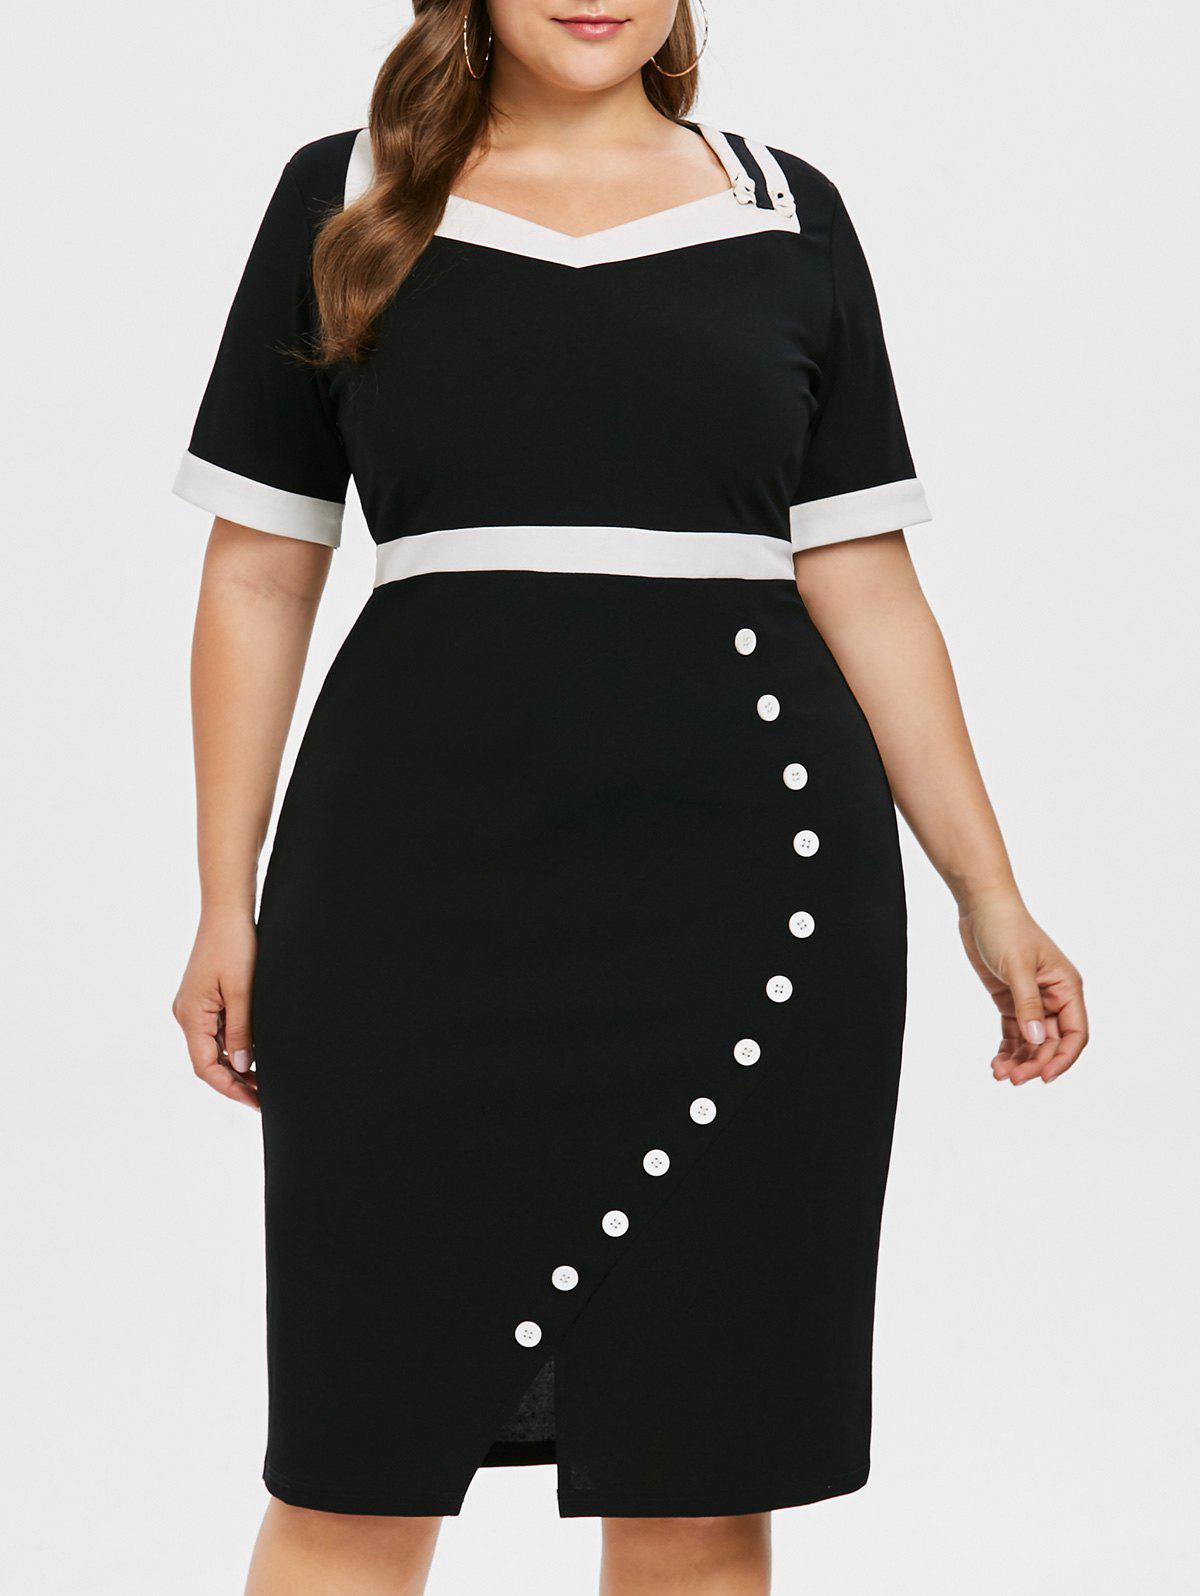 Store Sweetheart Neck Plus Size Button Embellished Bodycon Dress